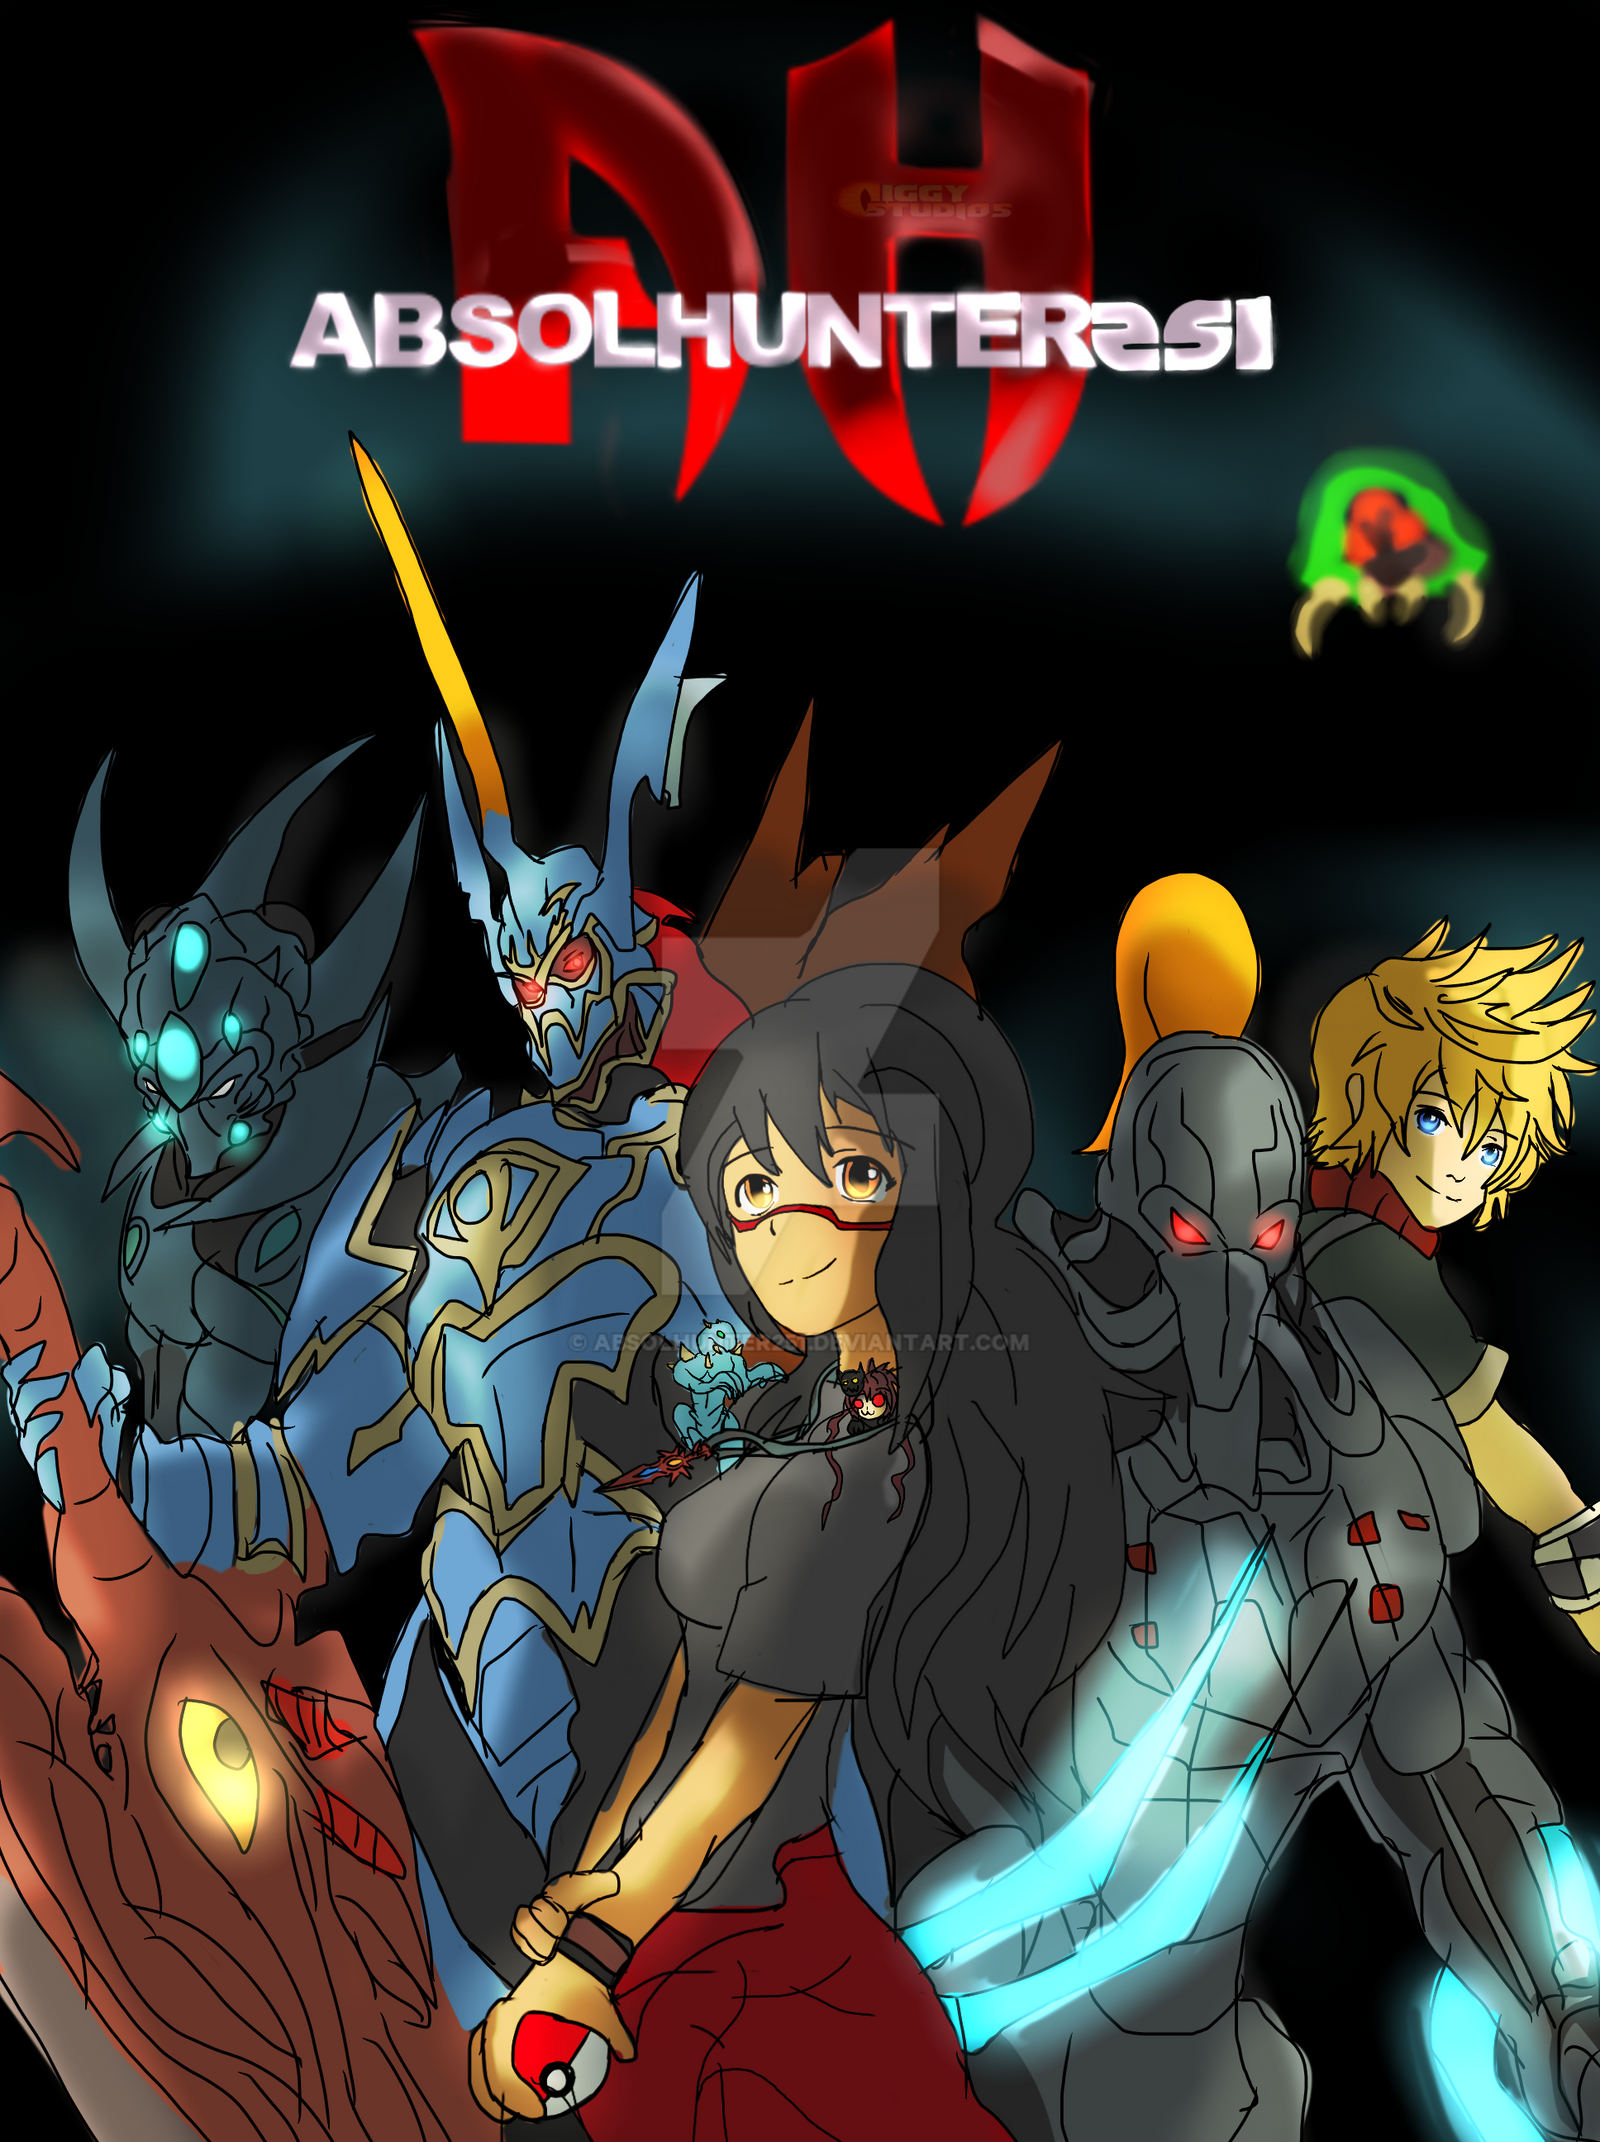 Absolhunter251's Profile Picture